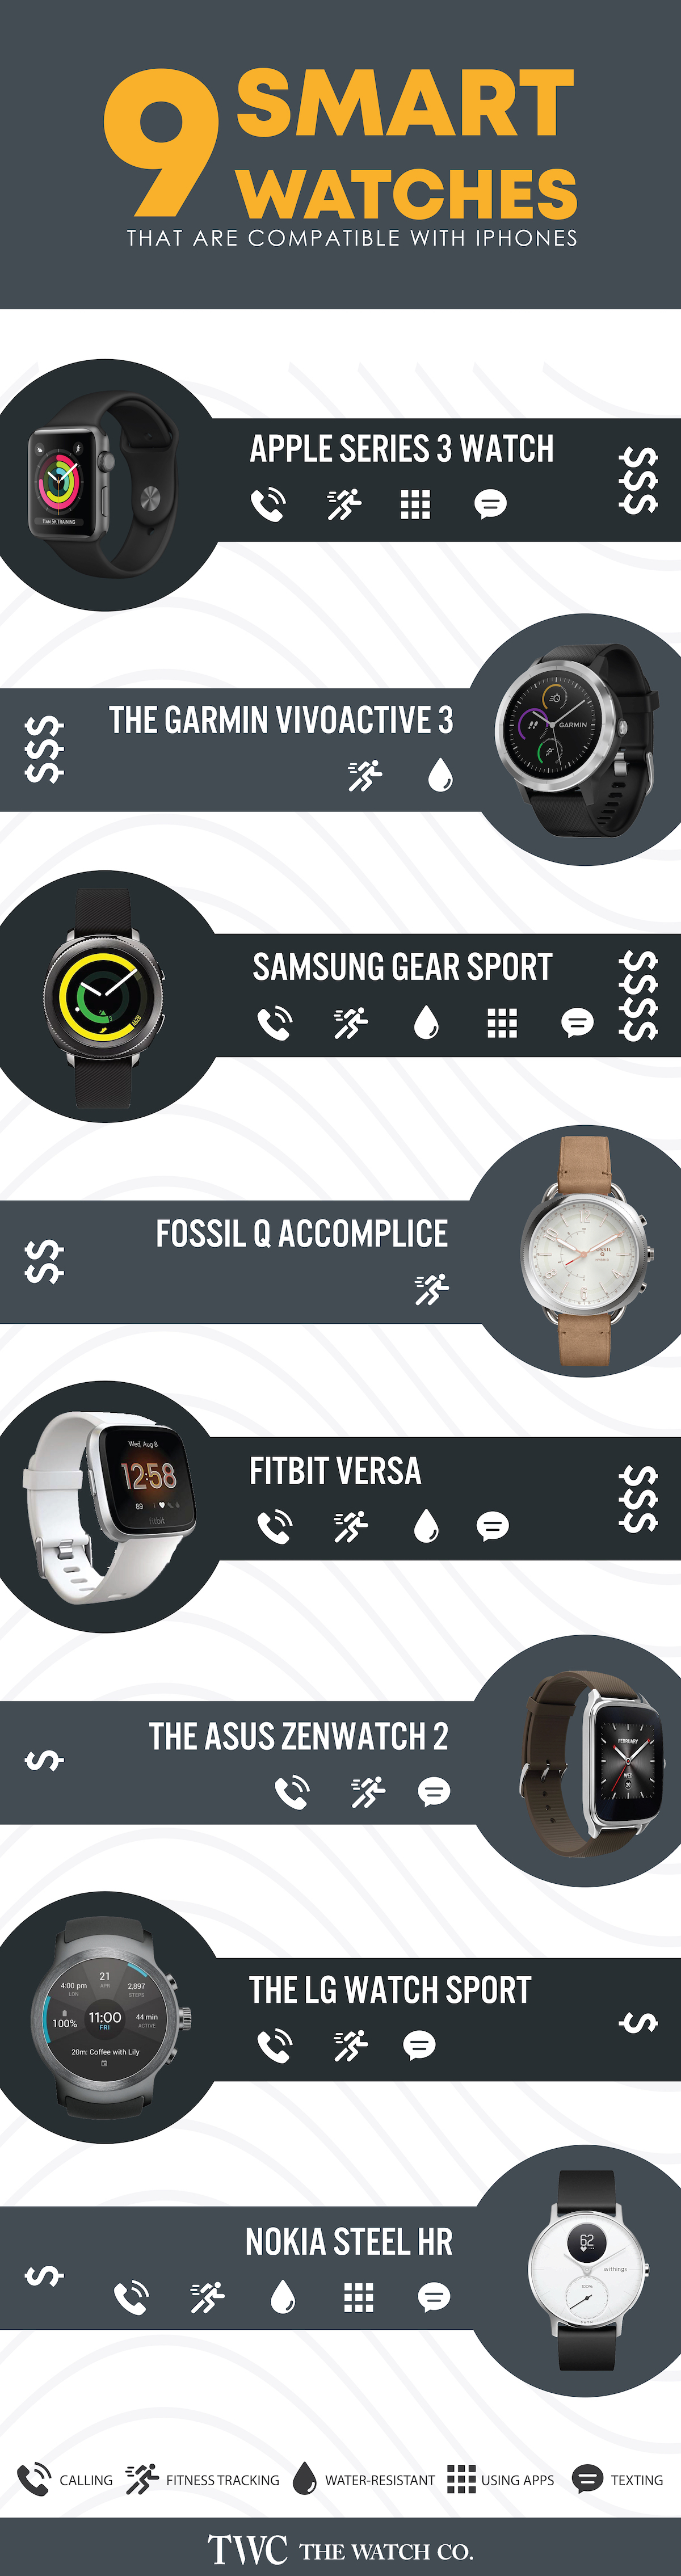 Smartwatch, Fitness Watch, Iphone Compatible